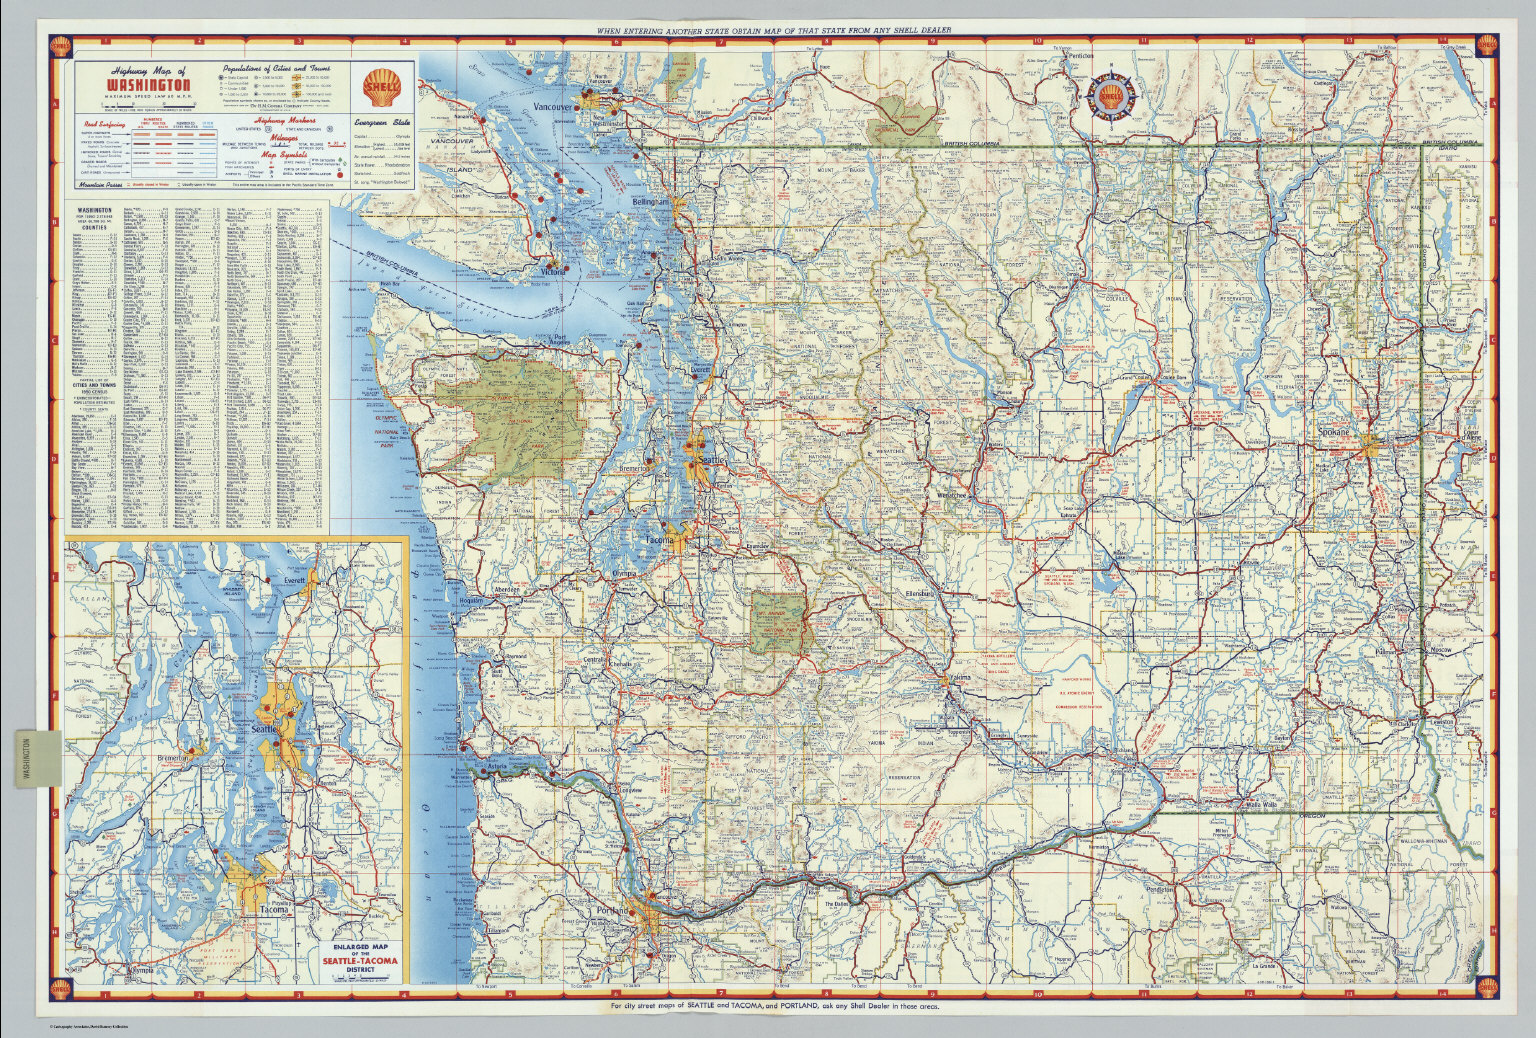 Shell Highway Map of Washington David Rumsey Historical Map